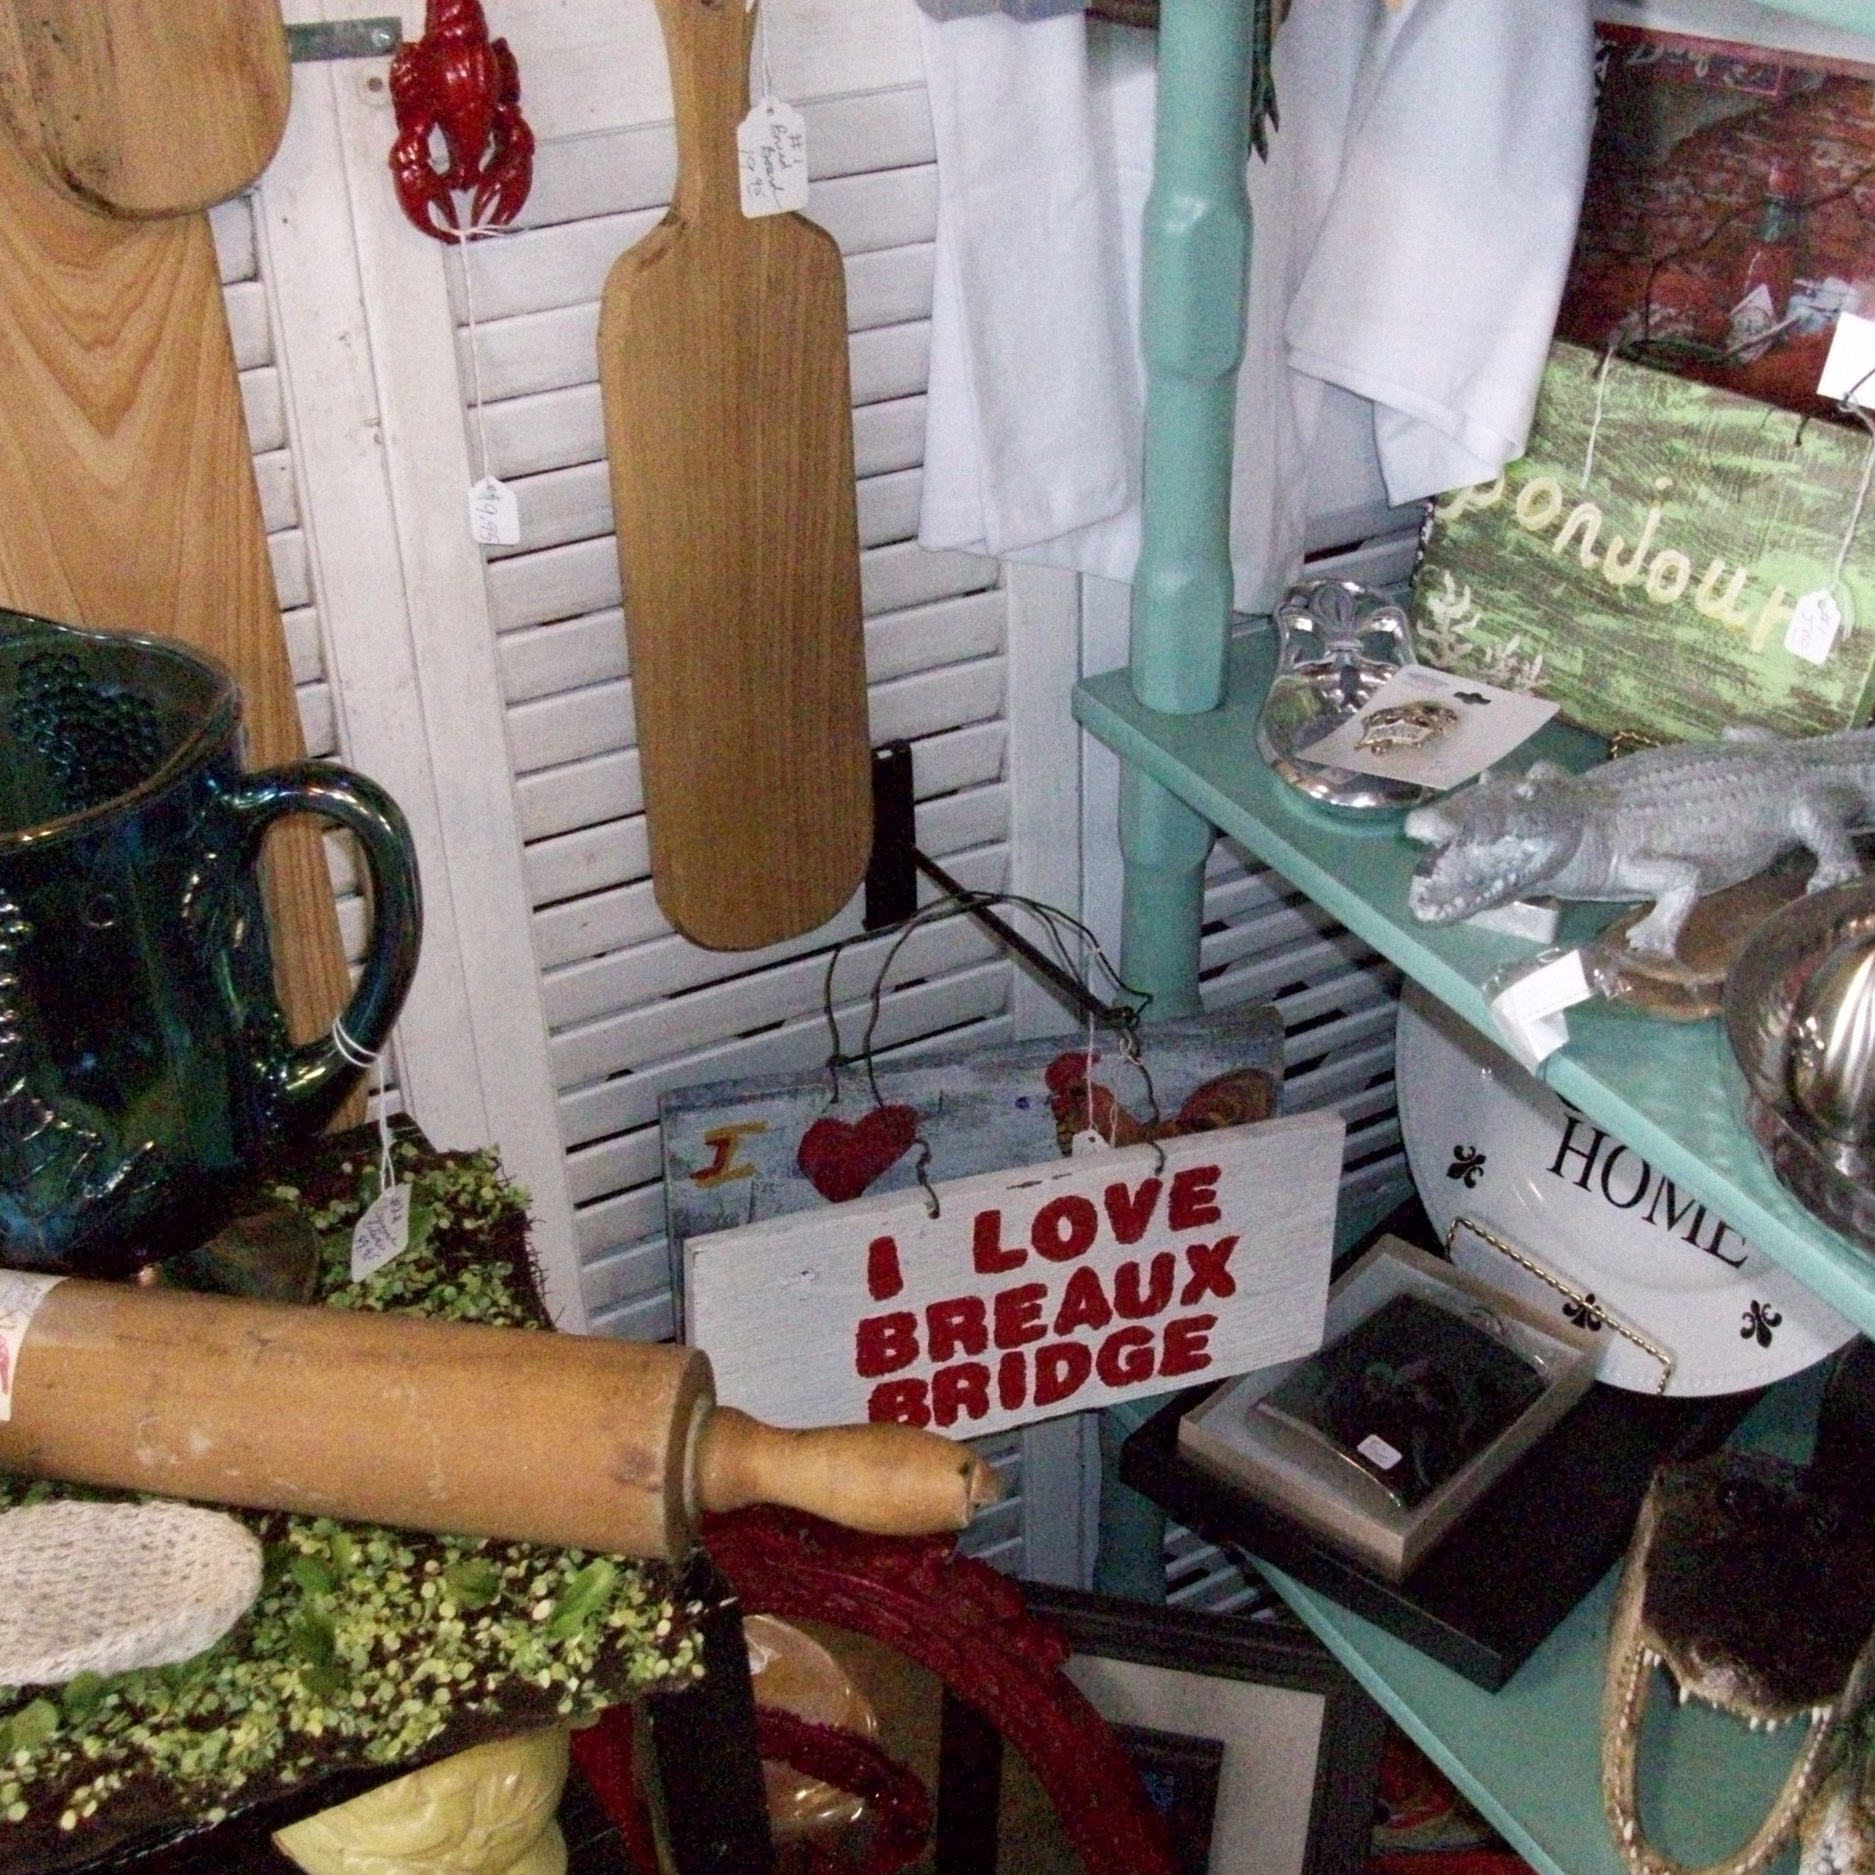 Lyn Roy - Louisiana souvenirs and antique items